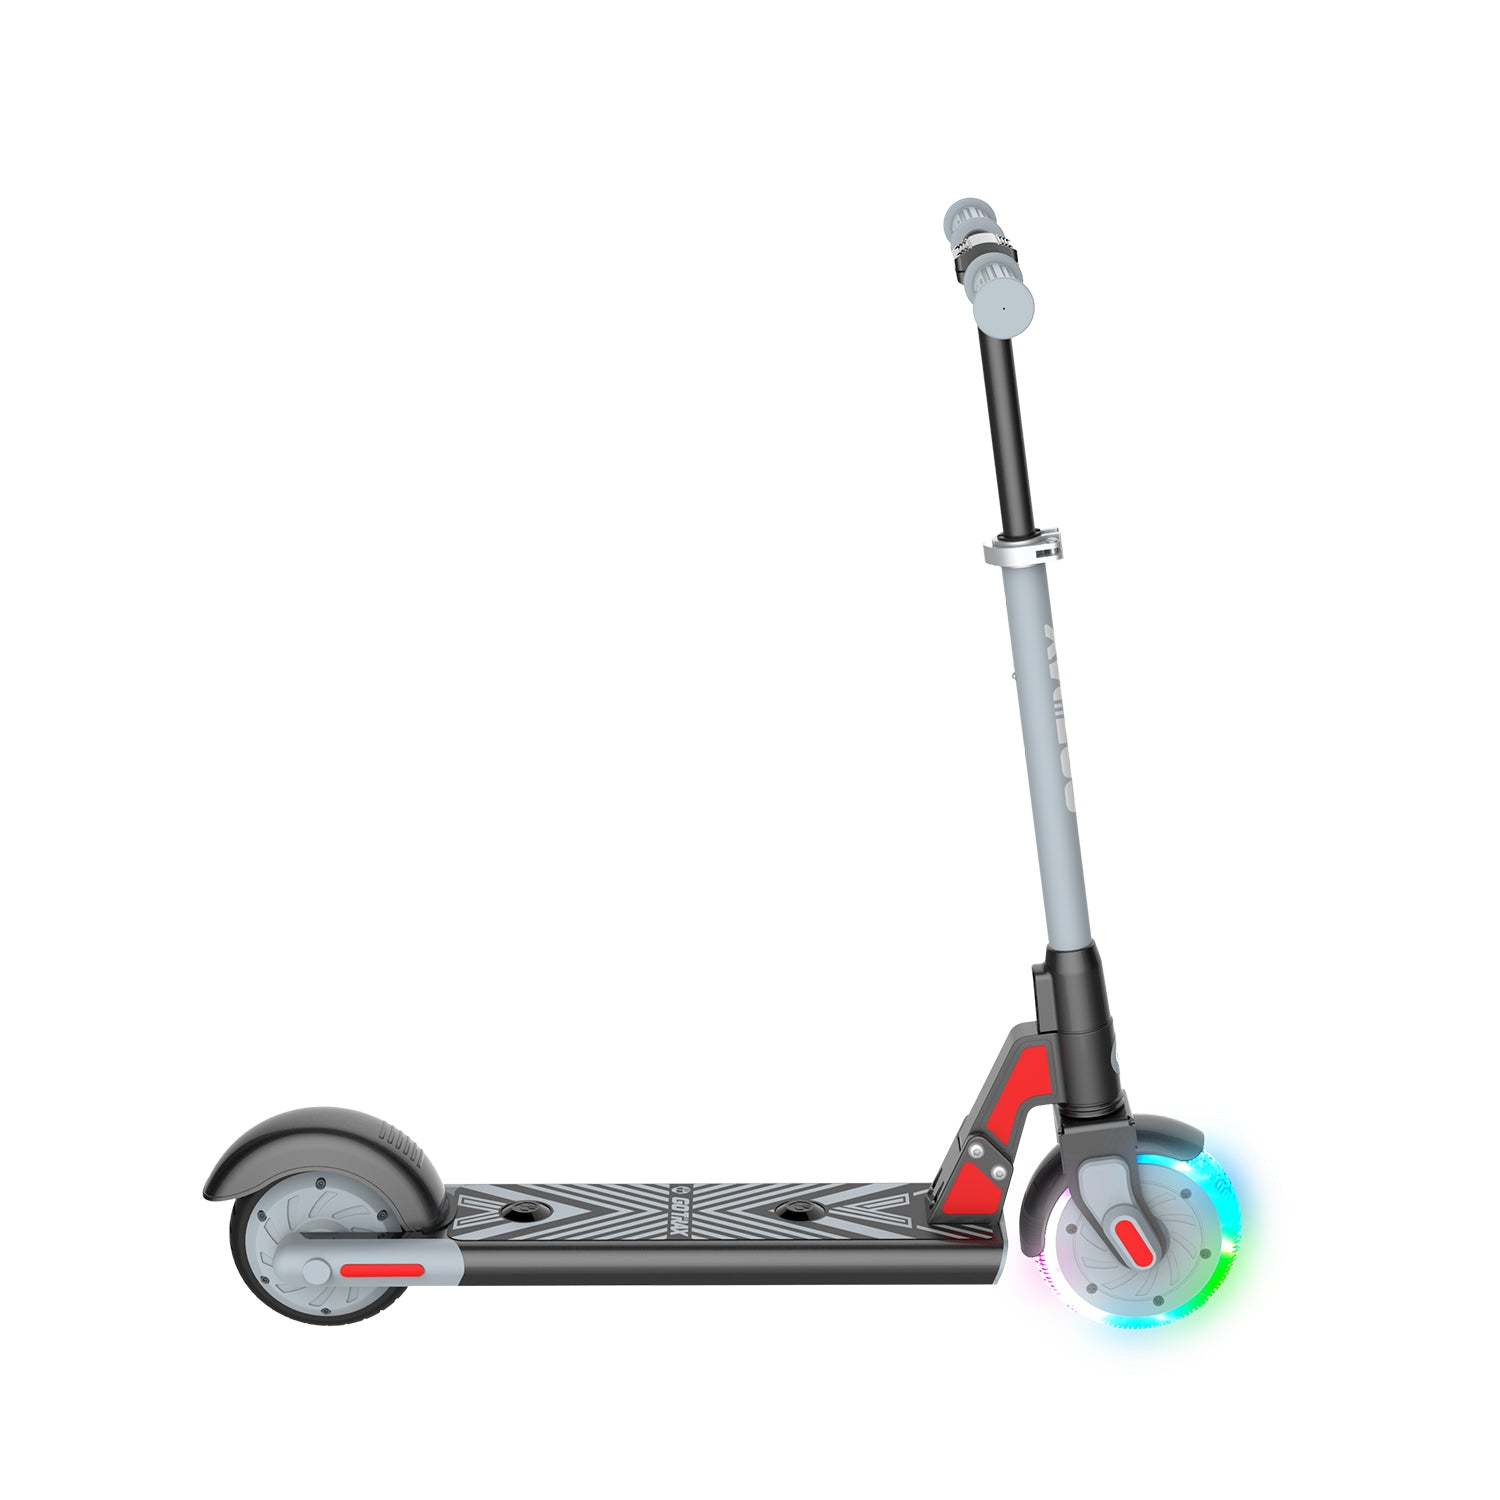 Gray gks lumios electric scooter for kids side image